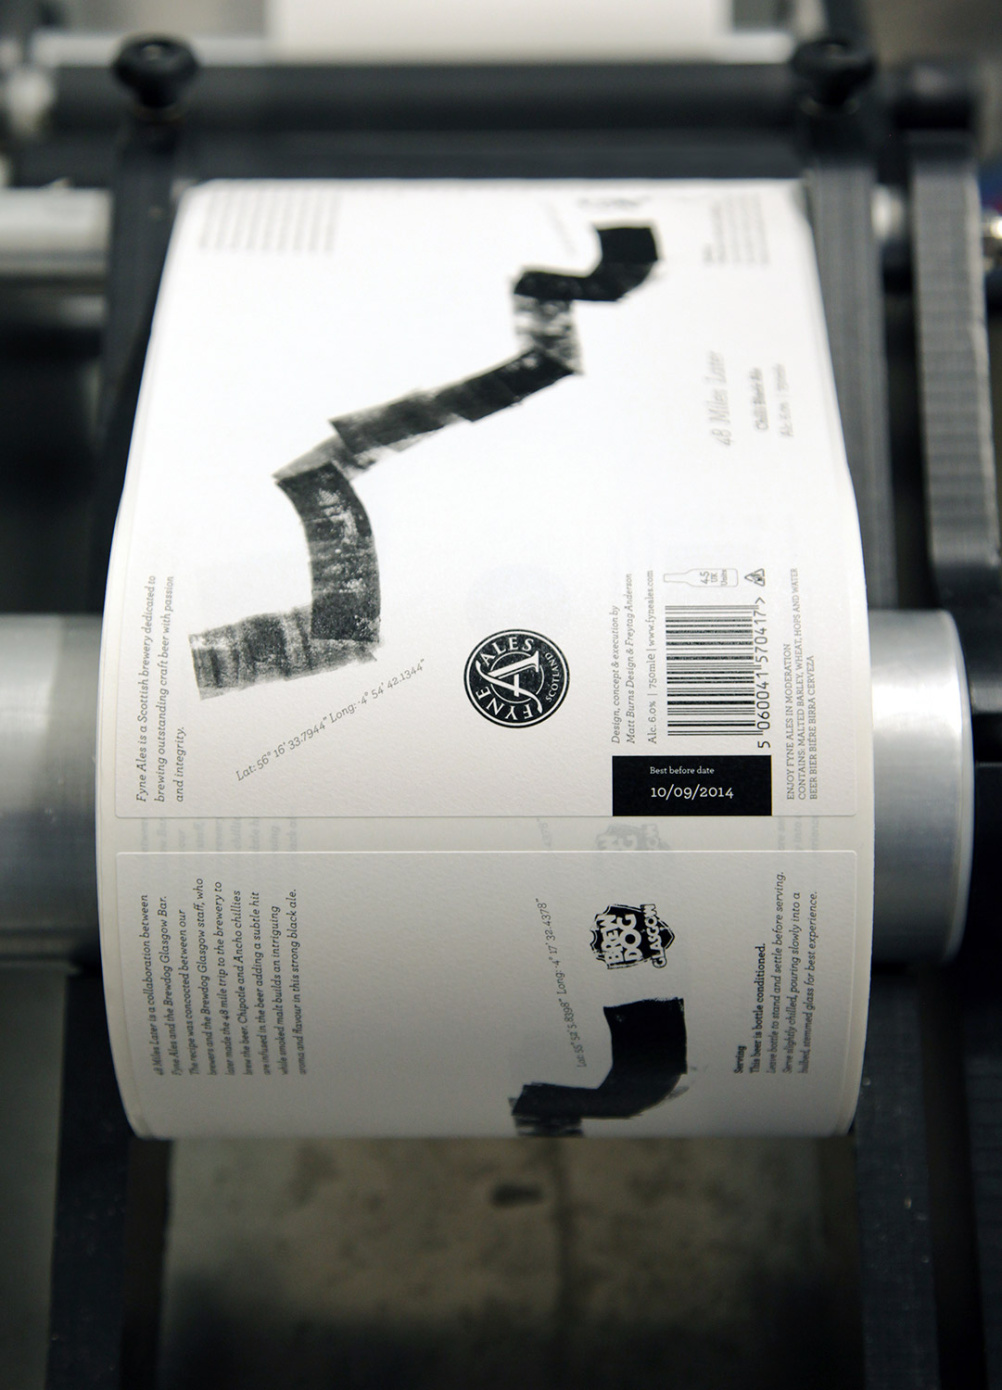 Printing the labels